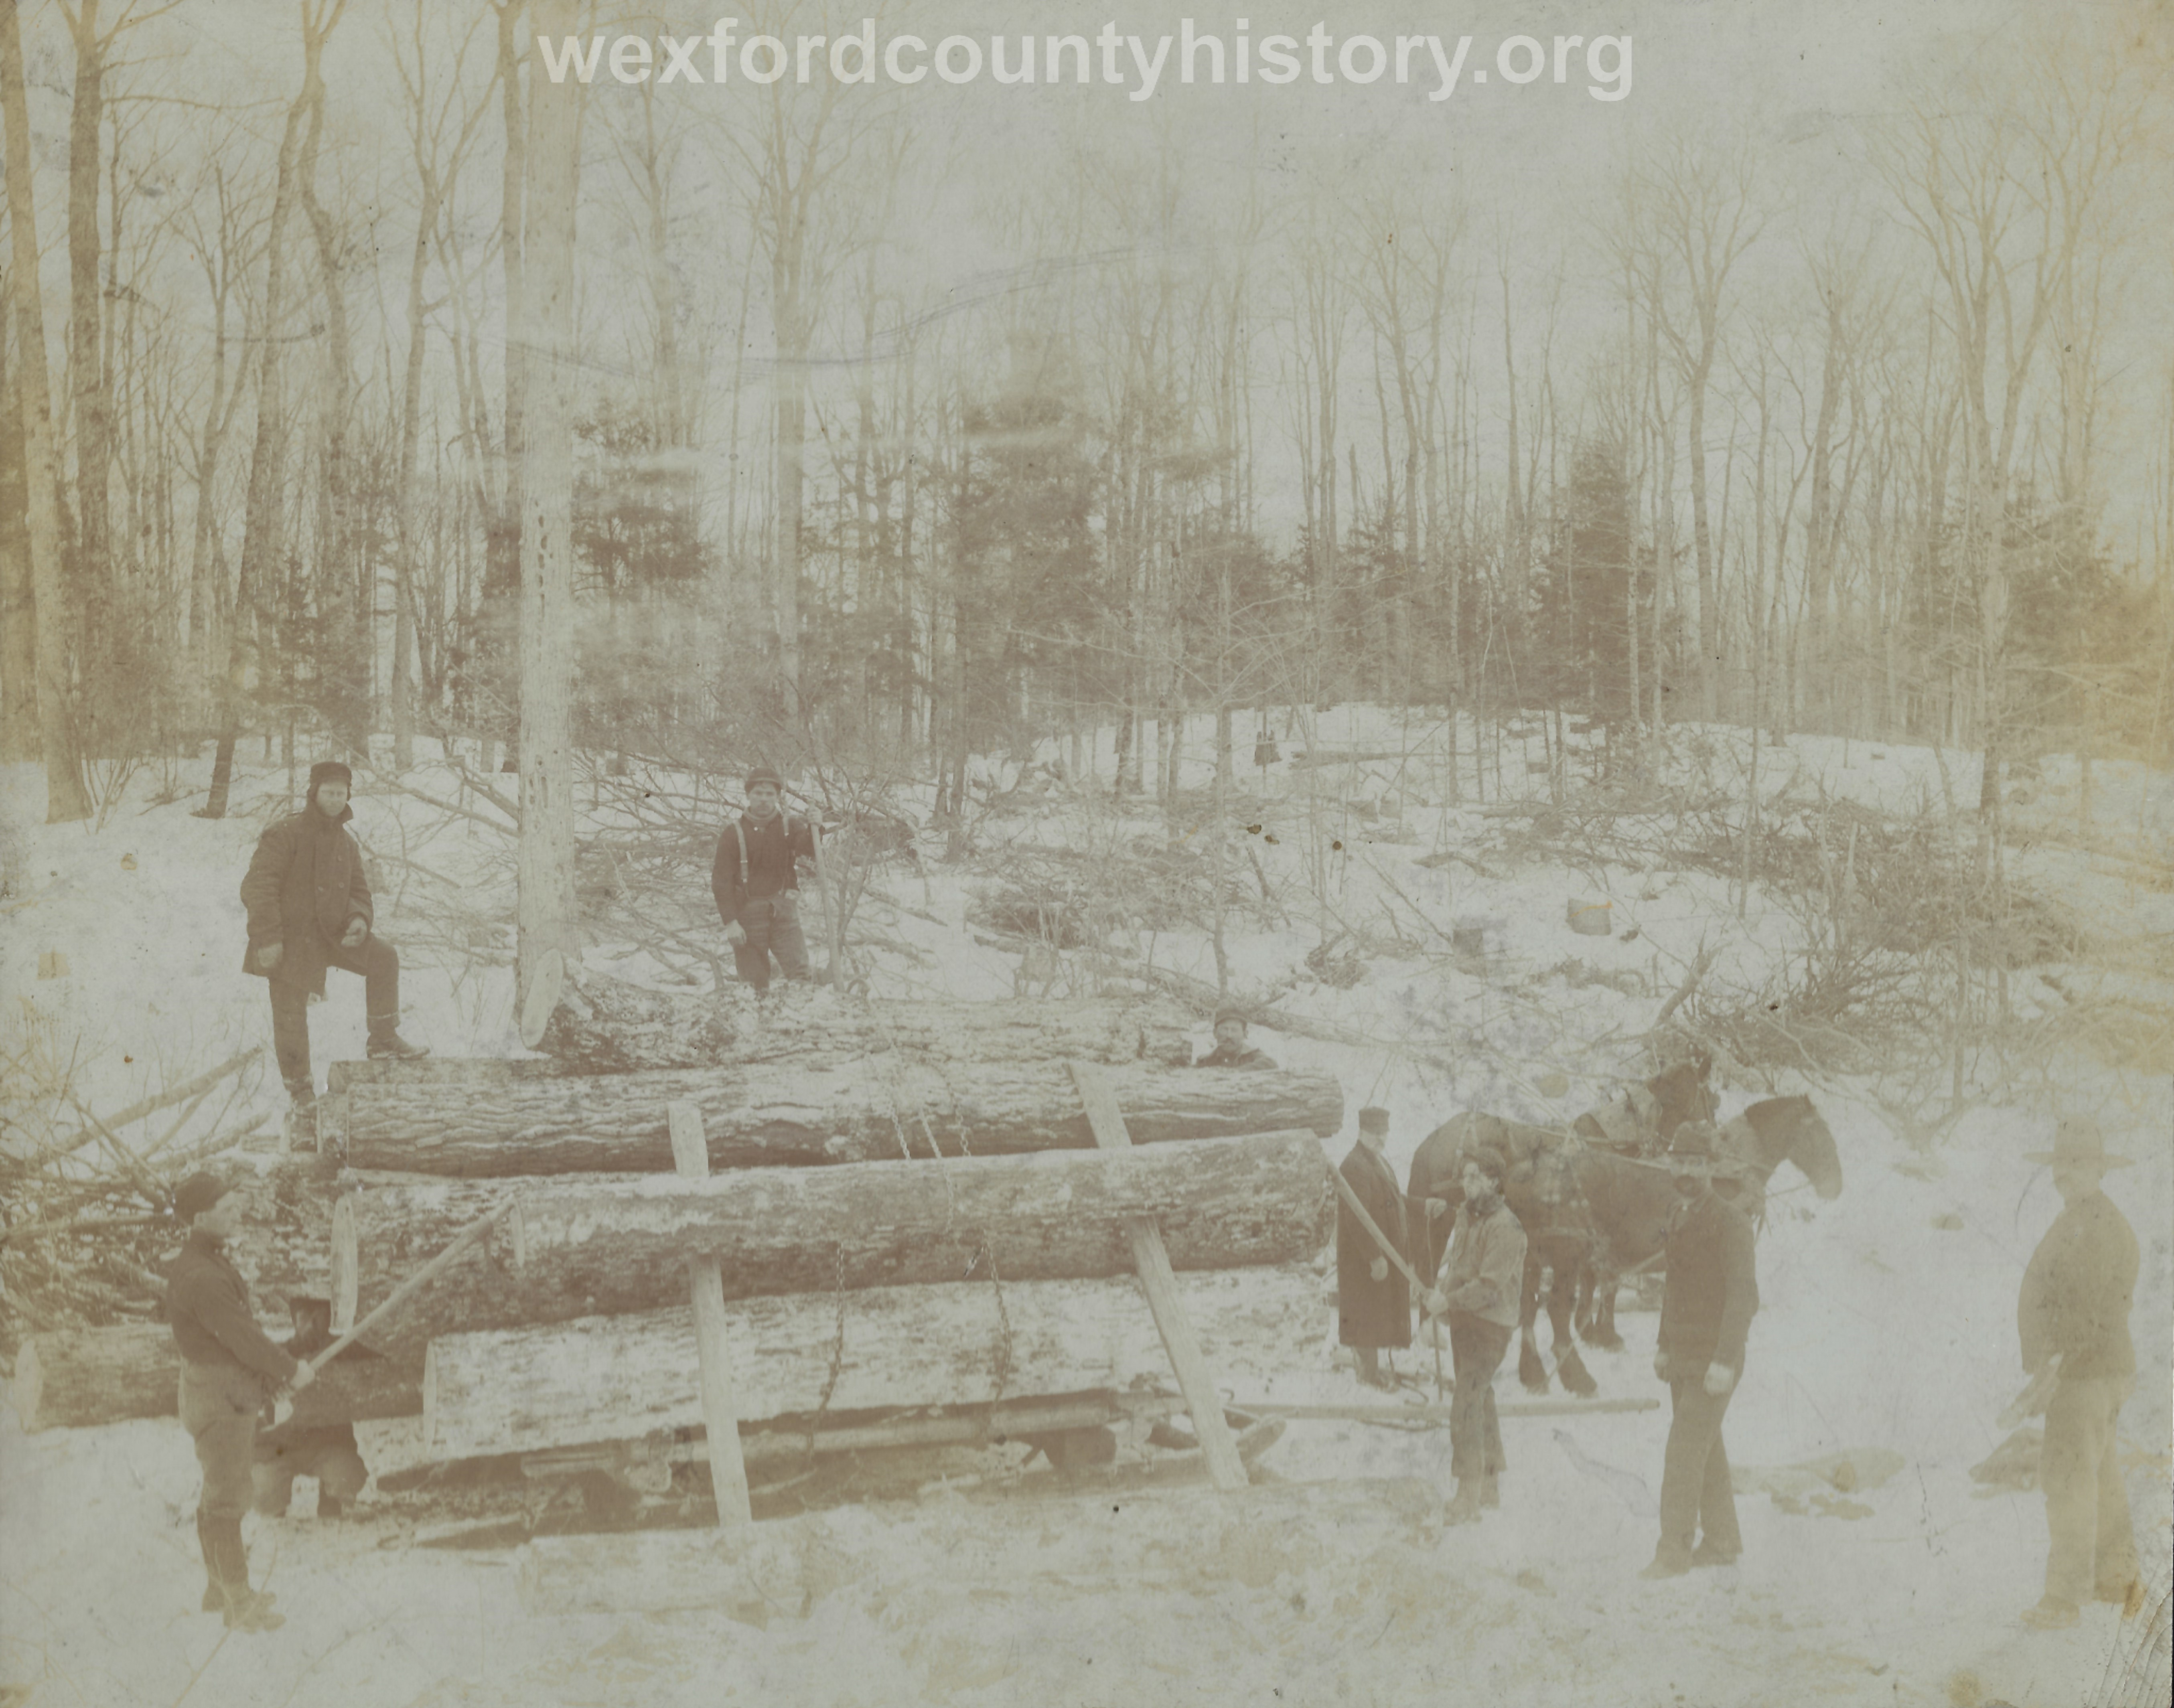 Cadillac-Lumber-Horse-Team-Pulling-Load-Of-Logs-On-Sled-2